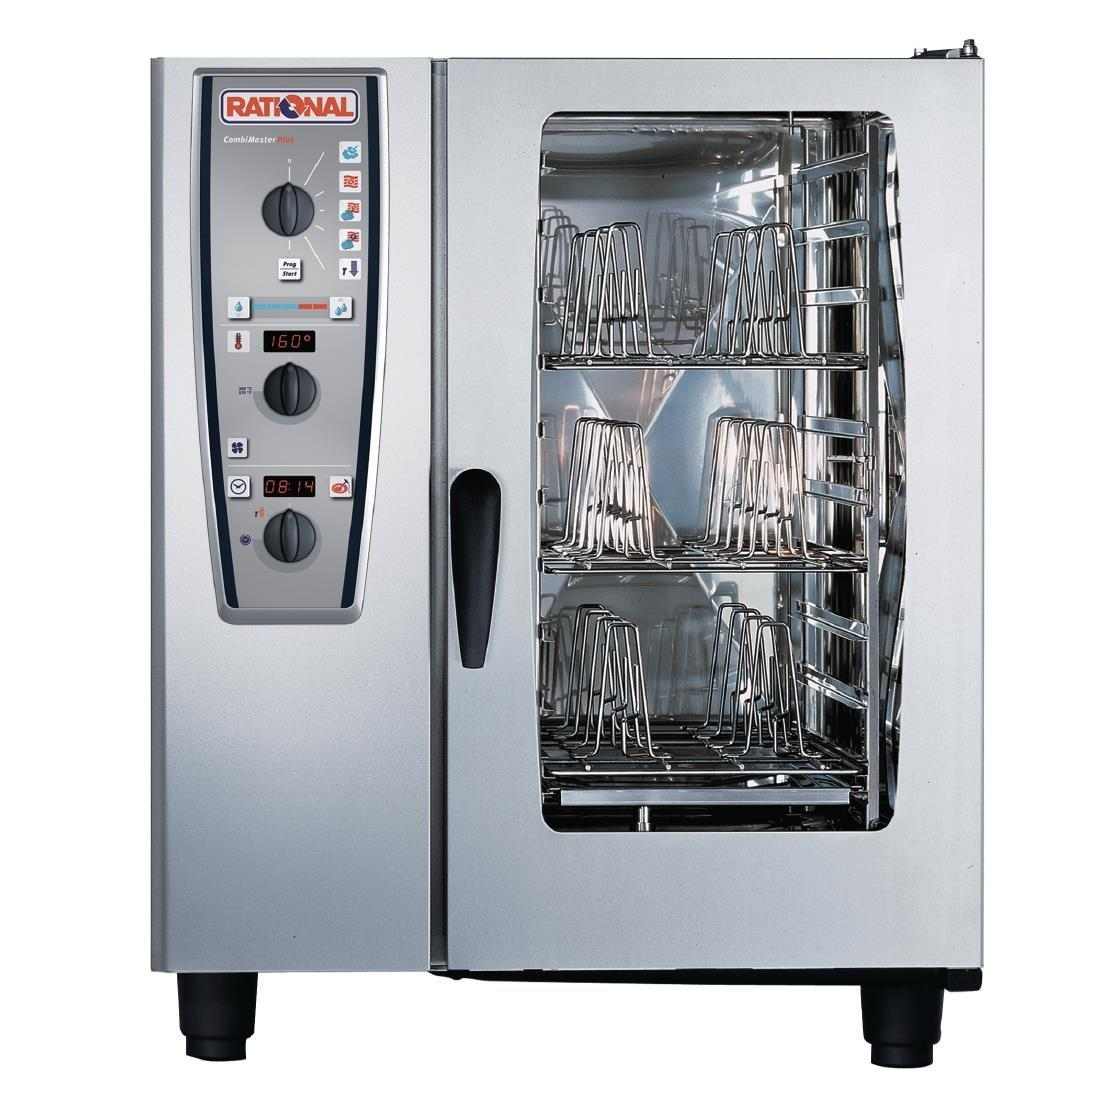 GJ084 - Rational Combimaster Plus 101 Electric (Direct)